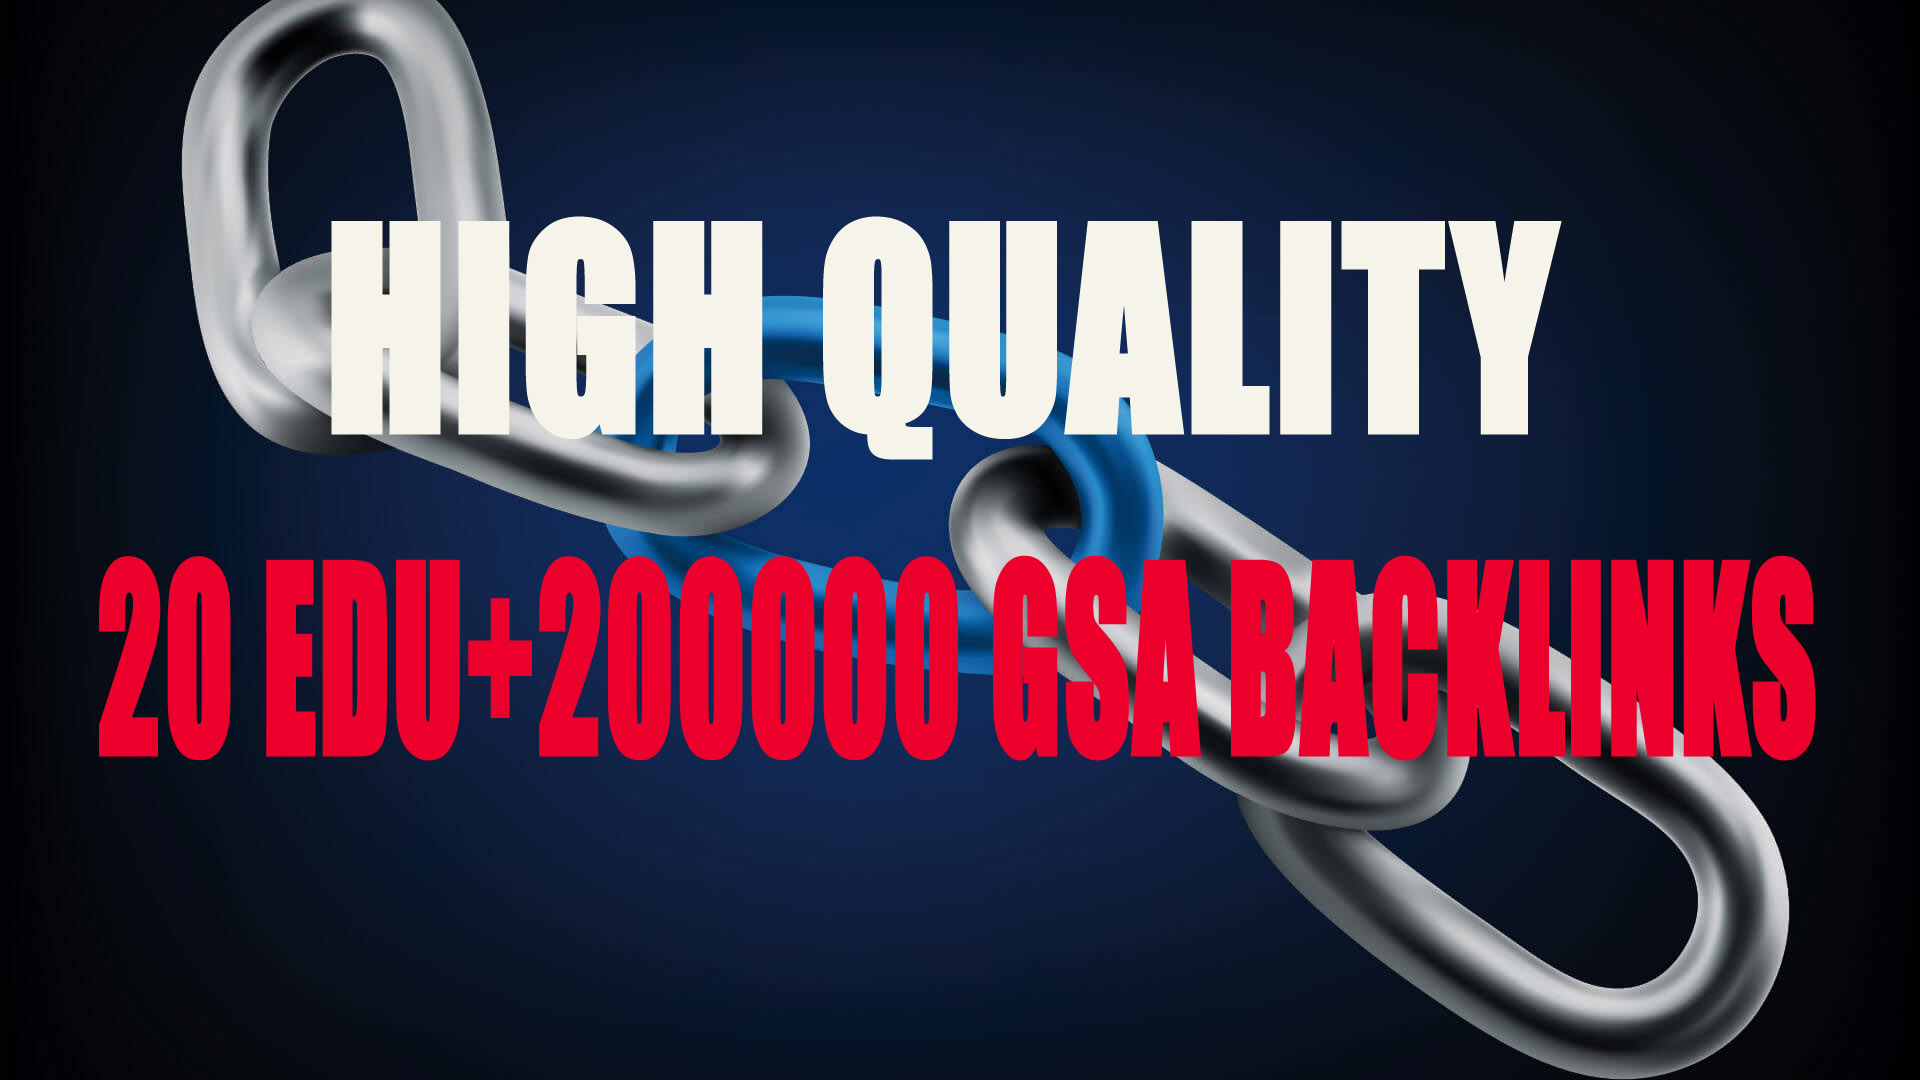 Top High Quality 20 Edu Backlinks With 200,000 GSA Blast to Boost your Website Rank on Google